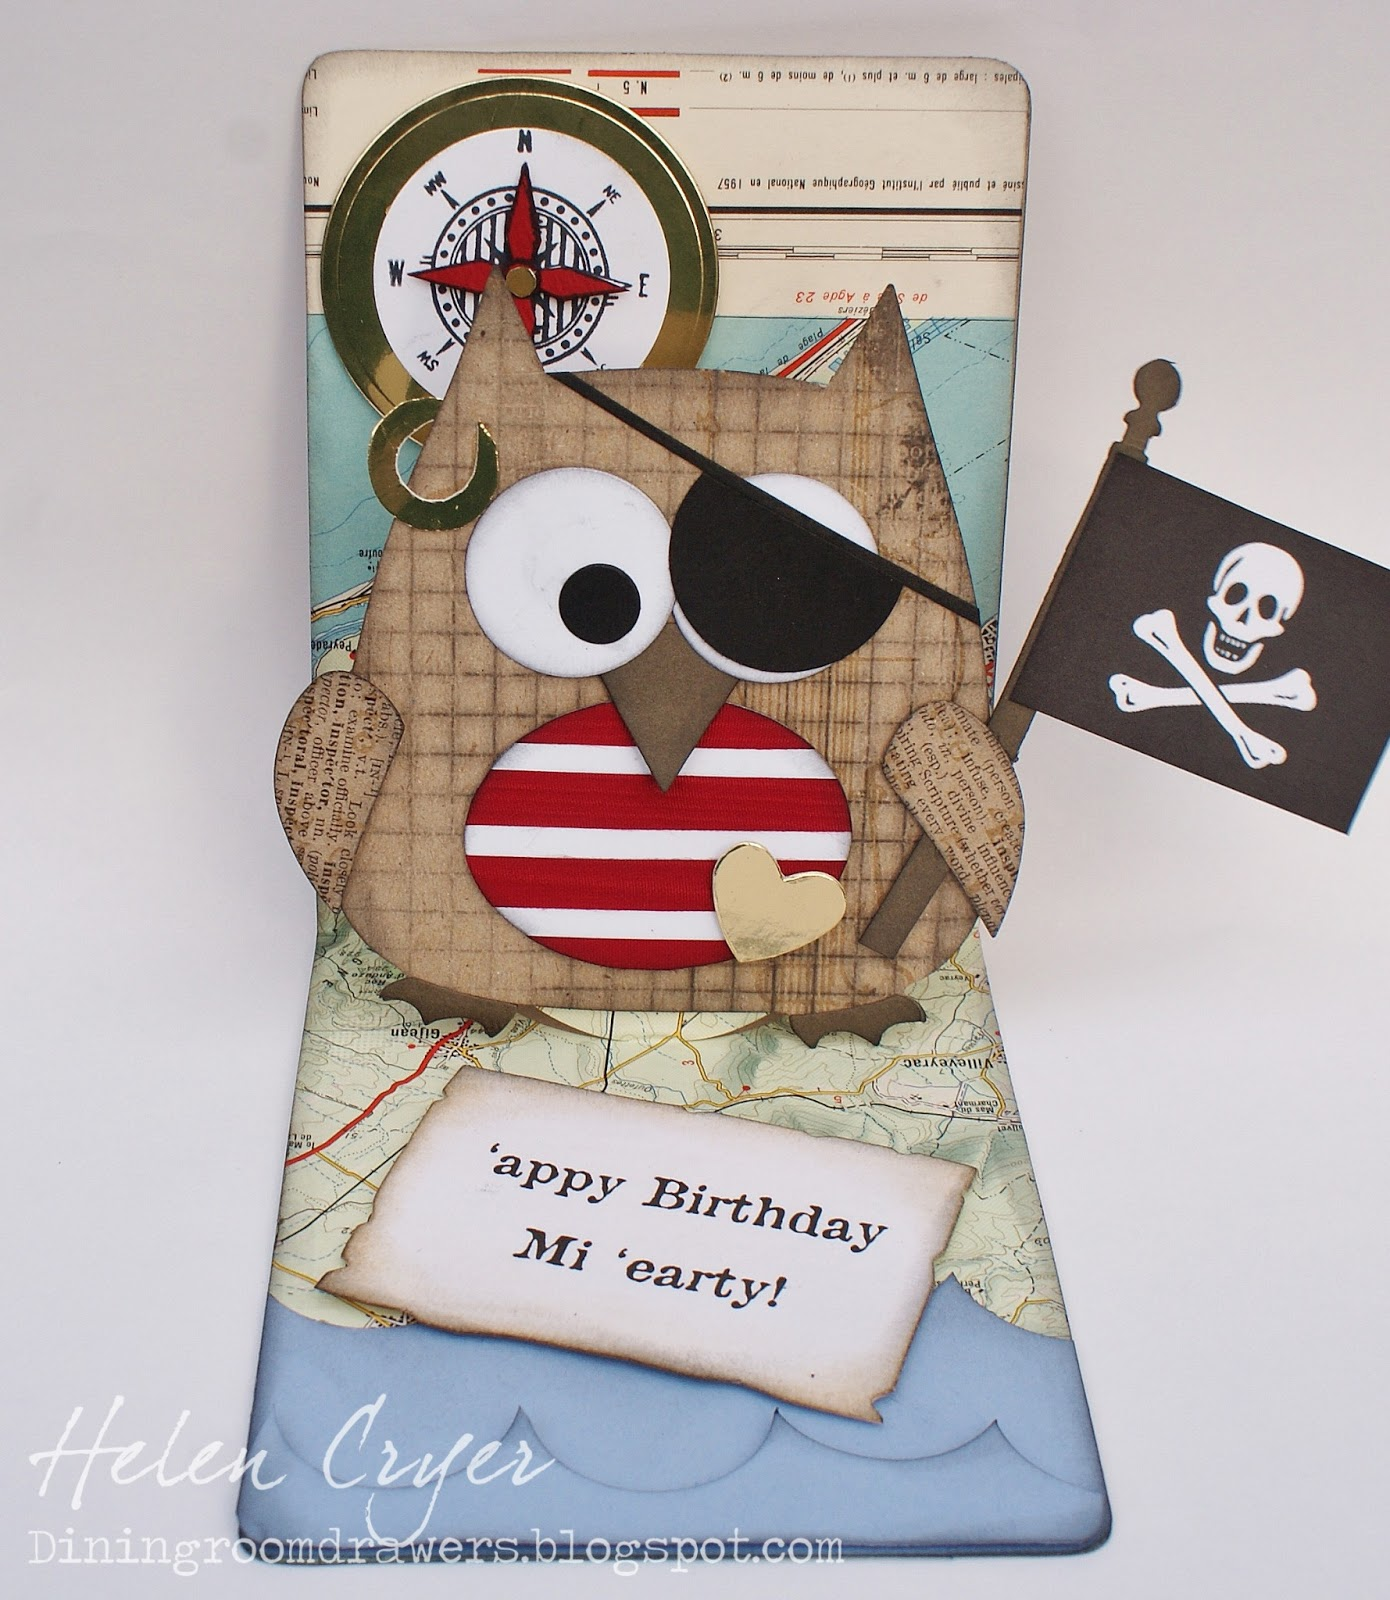 the dining room drawers pop 'n cuts owl card pirate